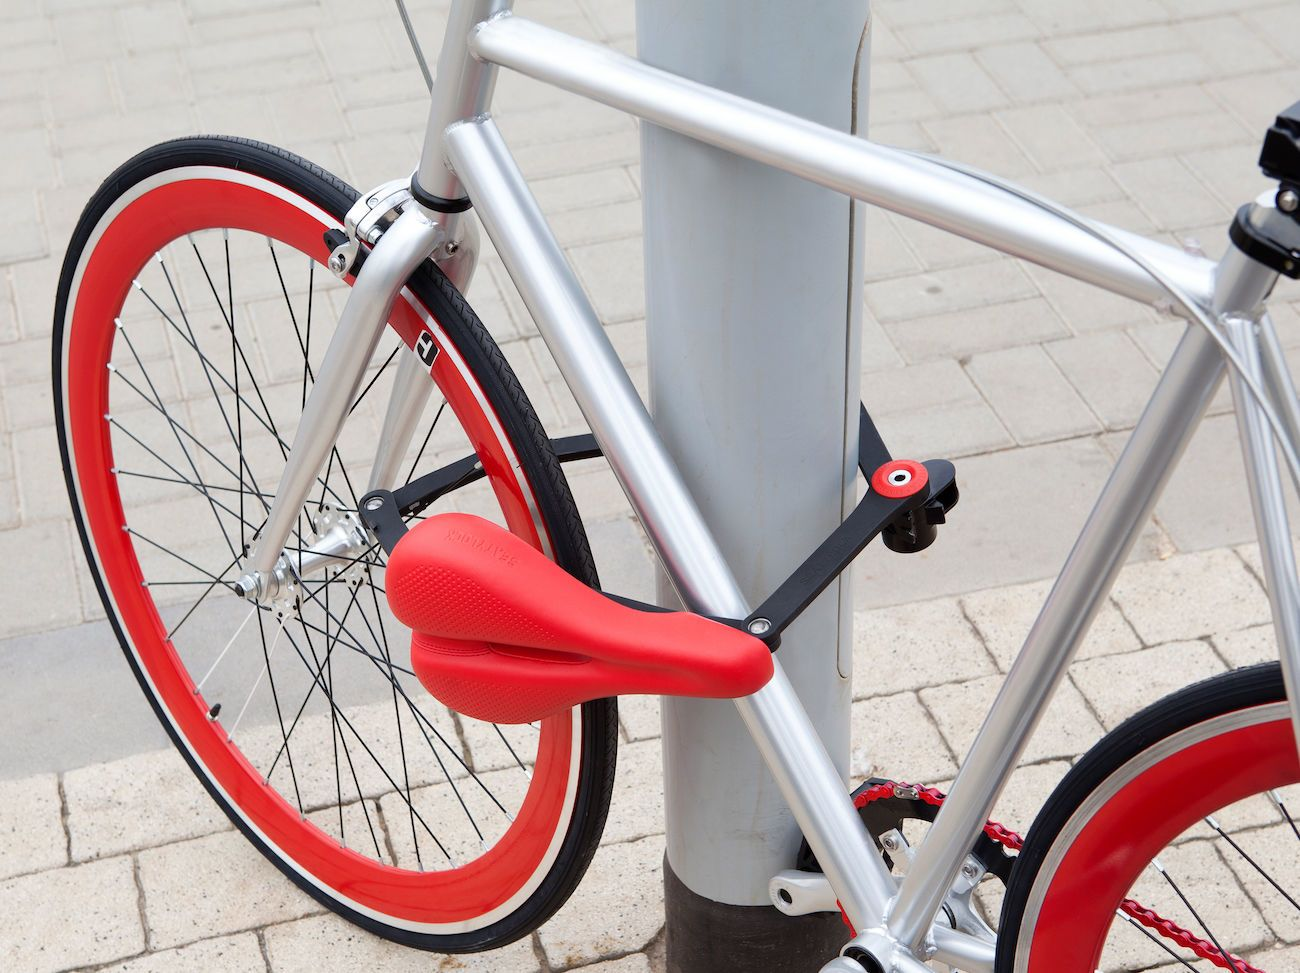 SEATYLOCK+Anti-Theft+Bicycle+Saddle